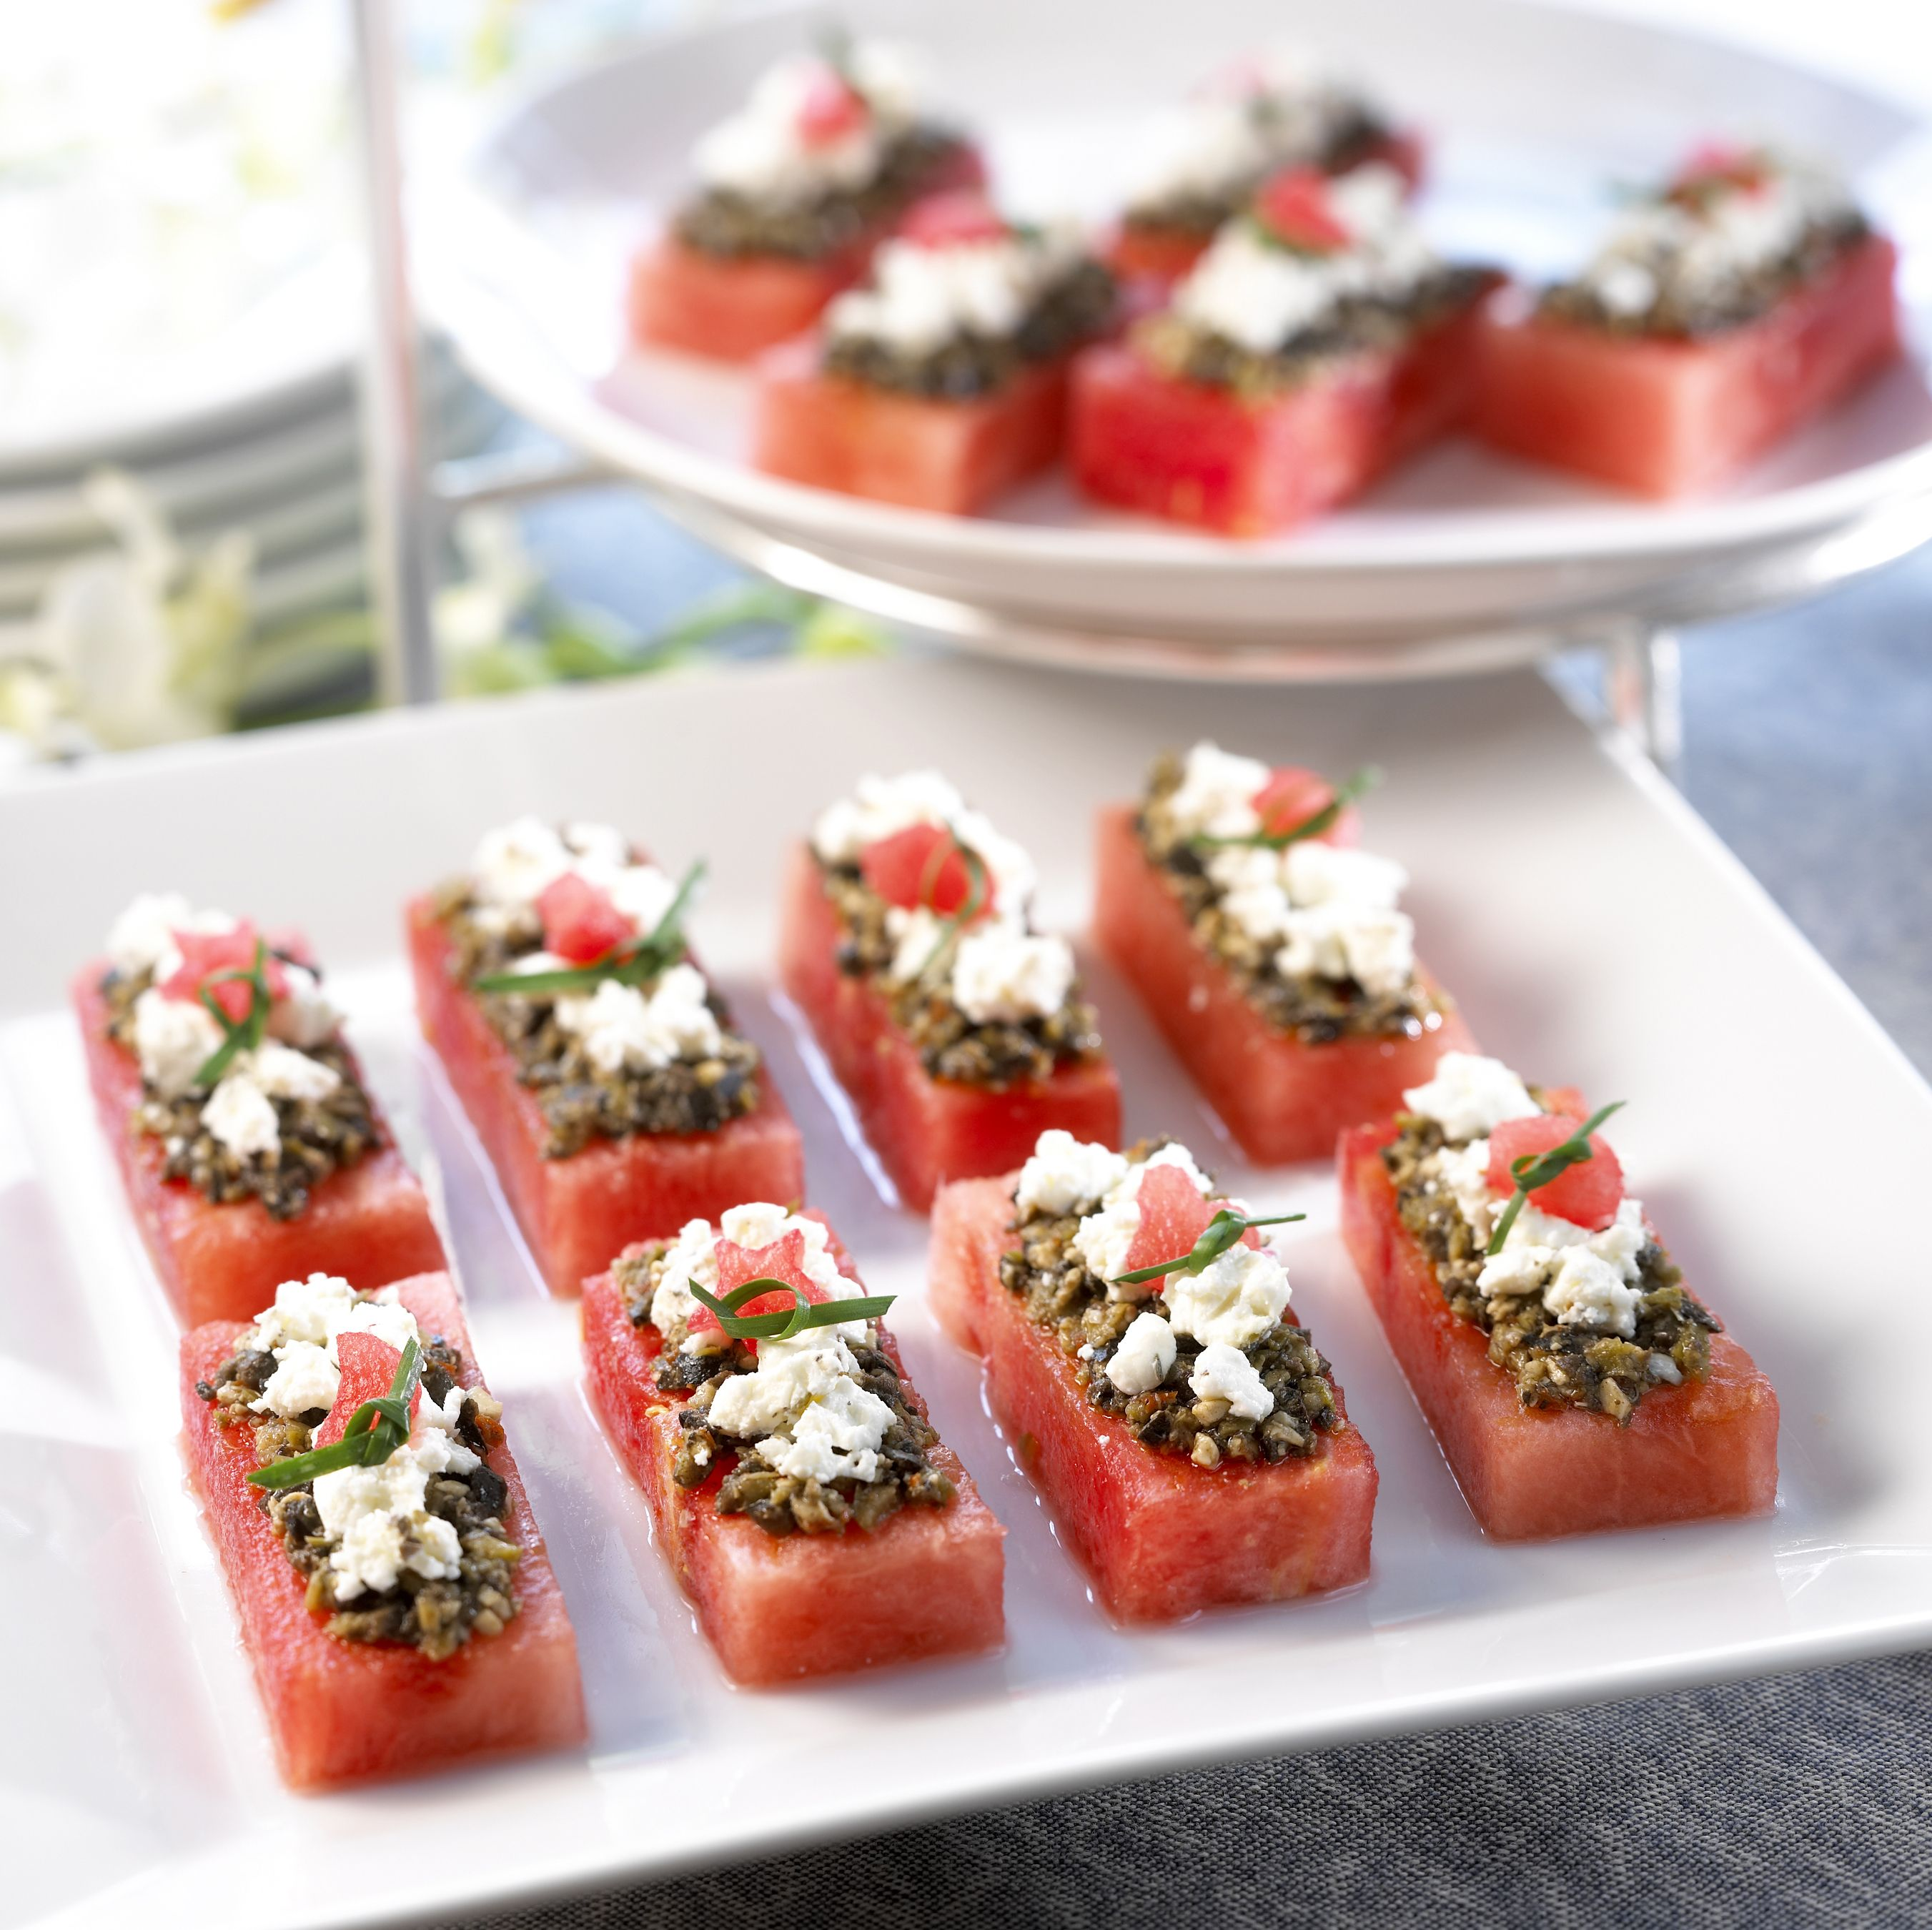 Watermelon Canapes Watermelon Board Recipe Appetizer Snacks Watermelon Recipes Recipes